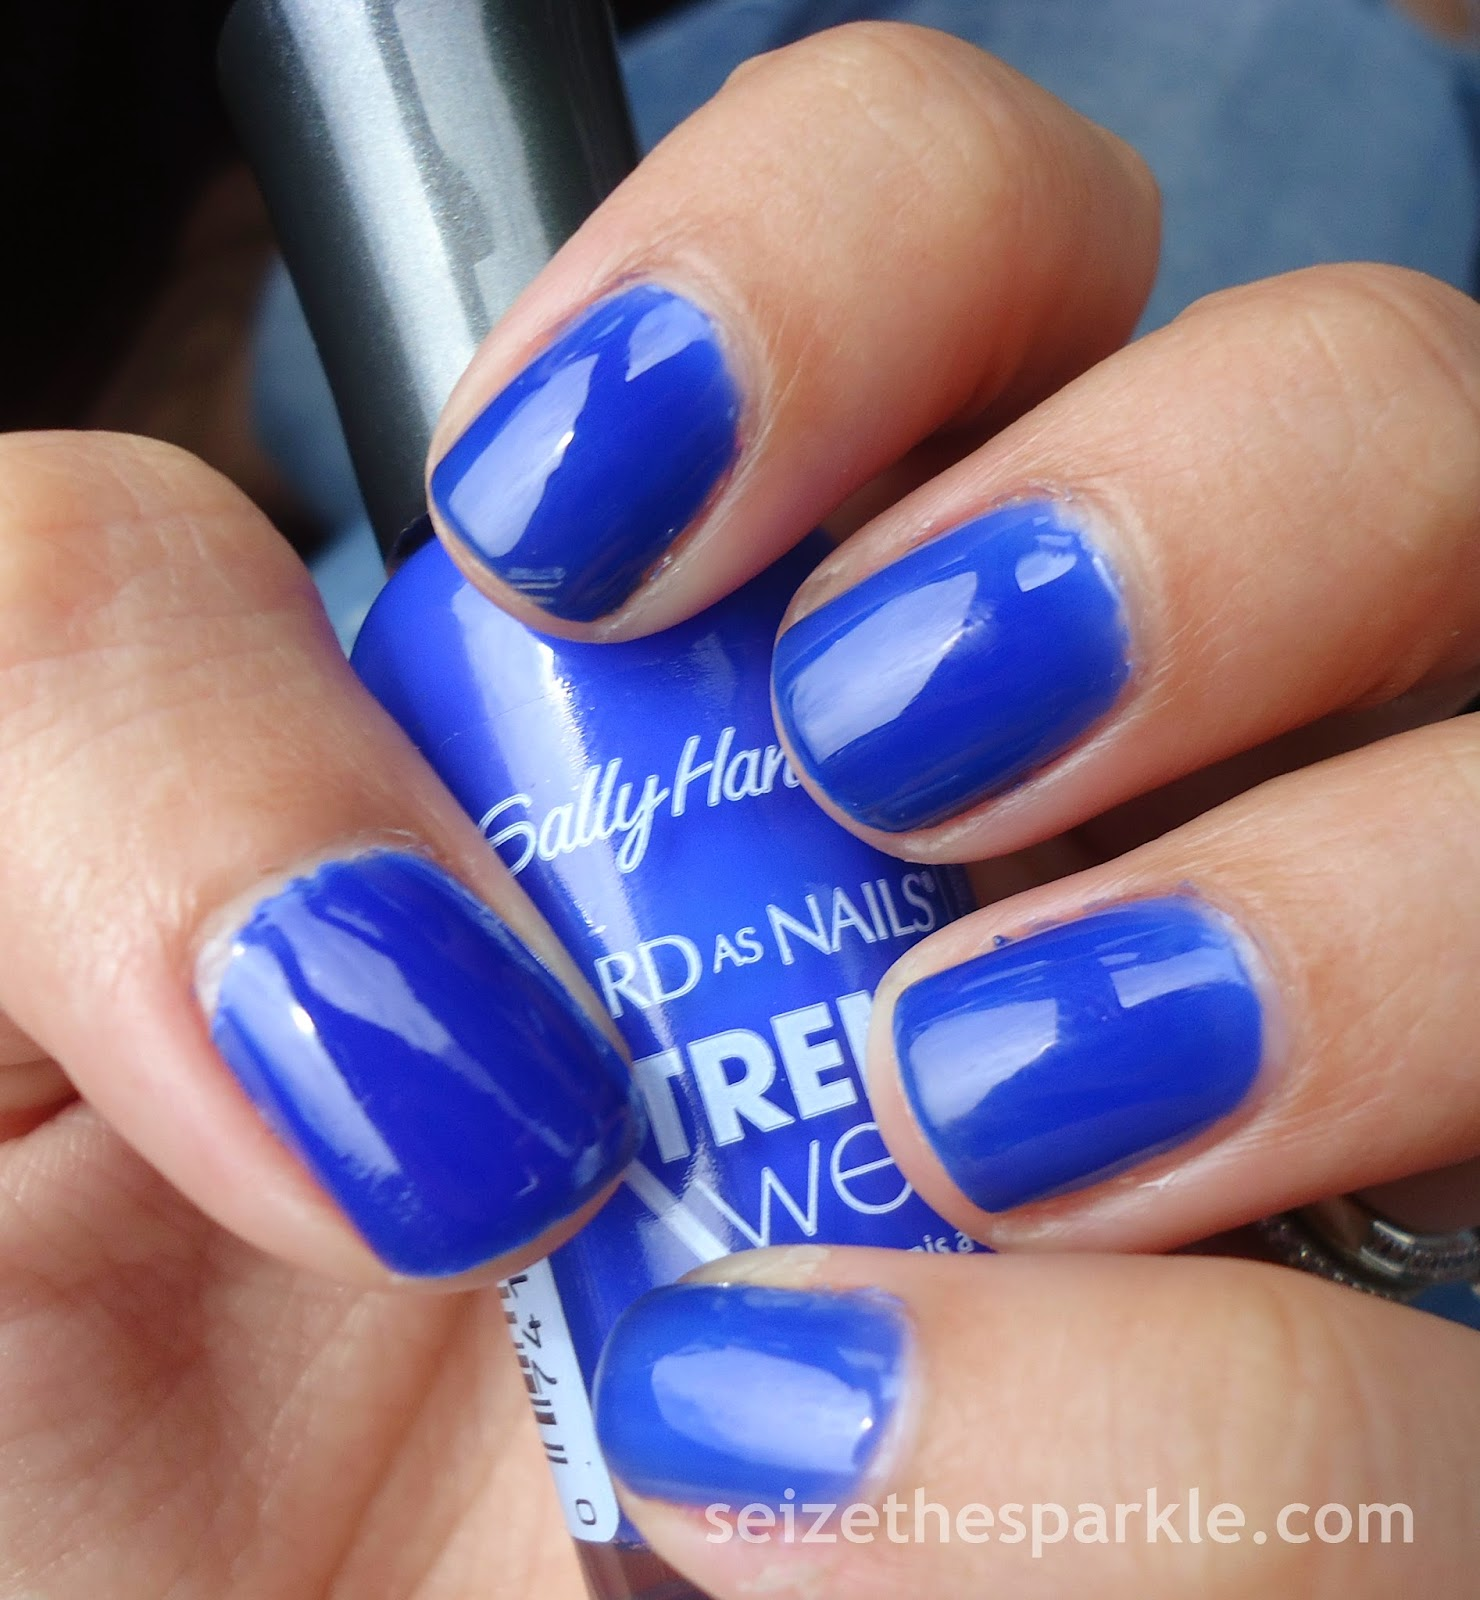 Royal Rage by Sally Hansen